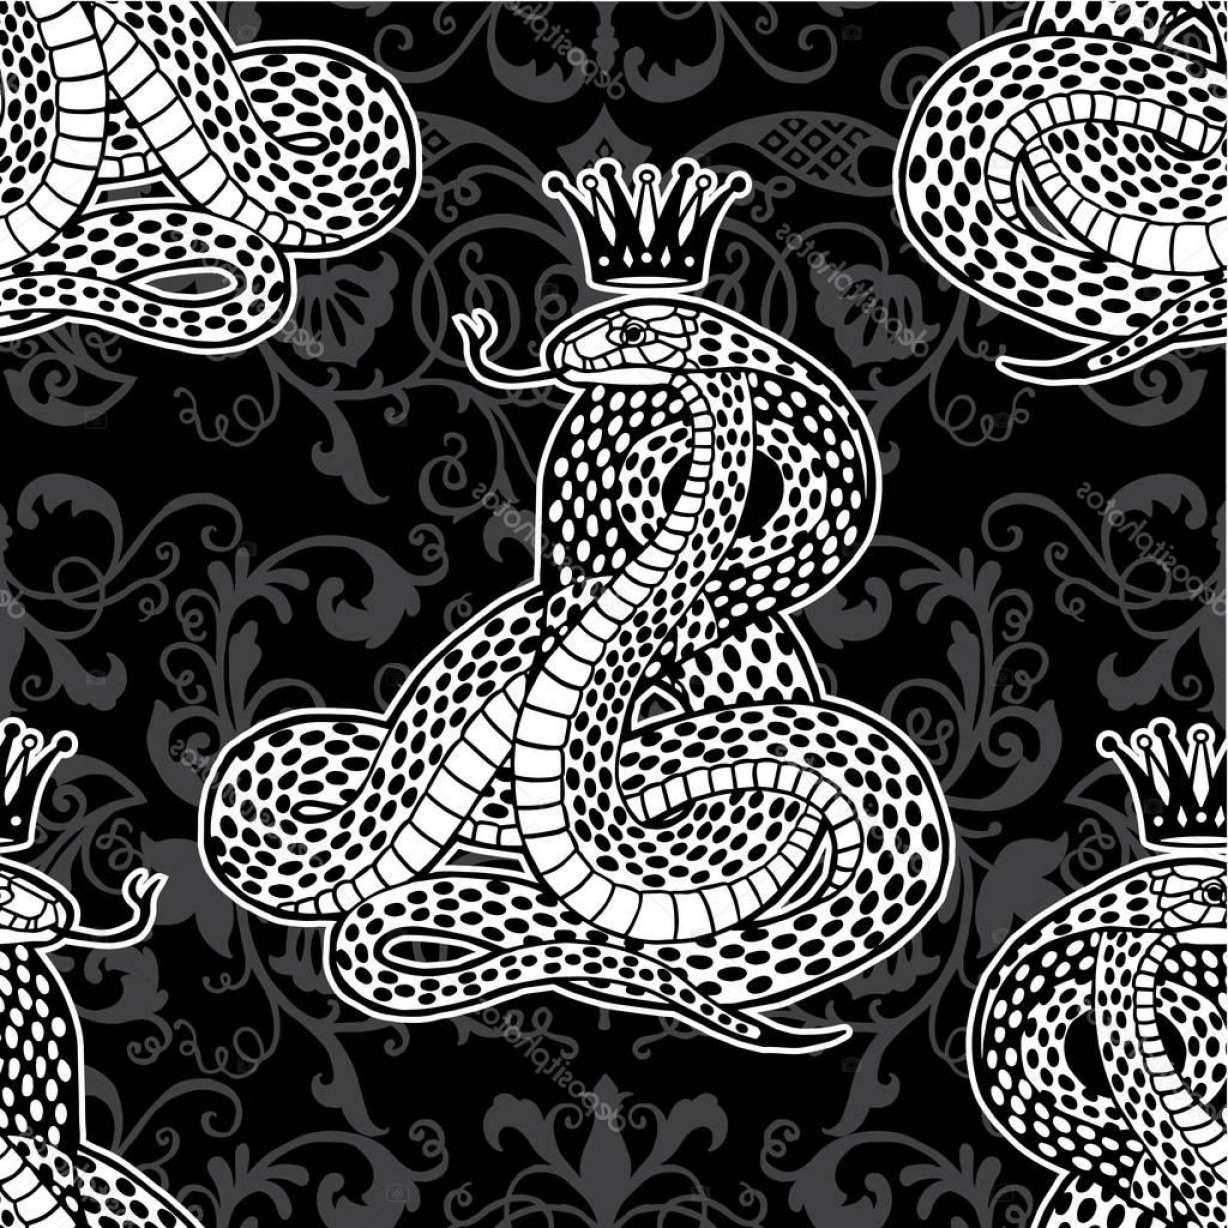 Snake Crown Vector: Stock Illustration Snake With Crown Seamless Pattern